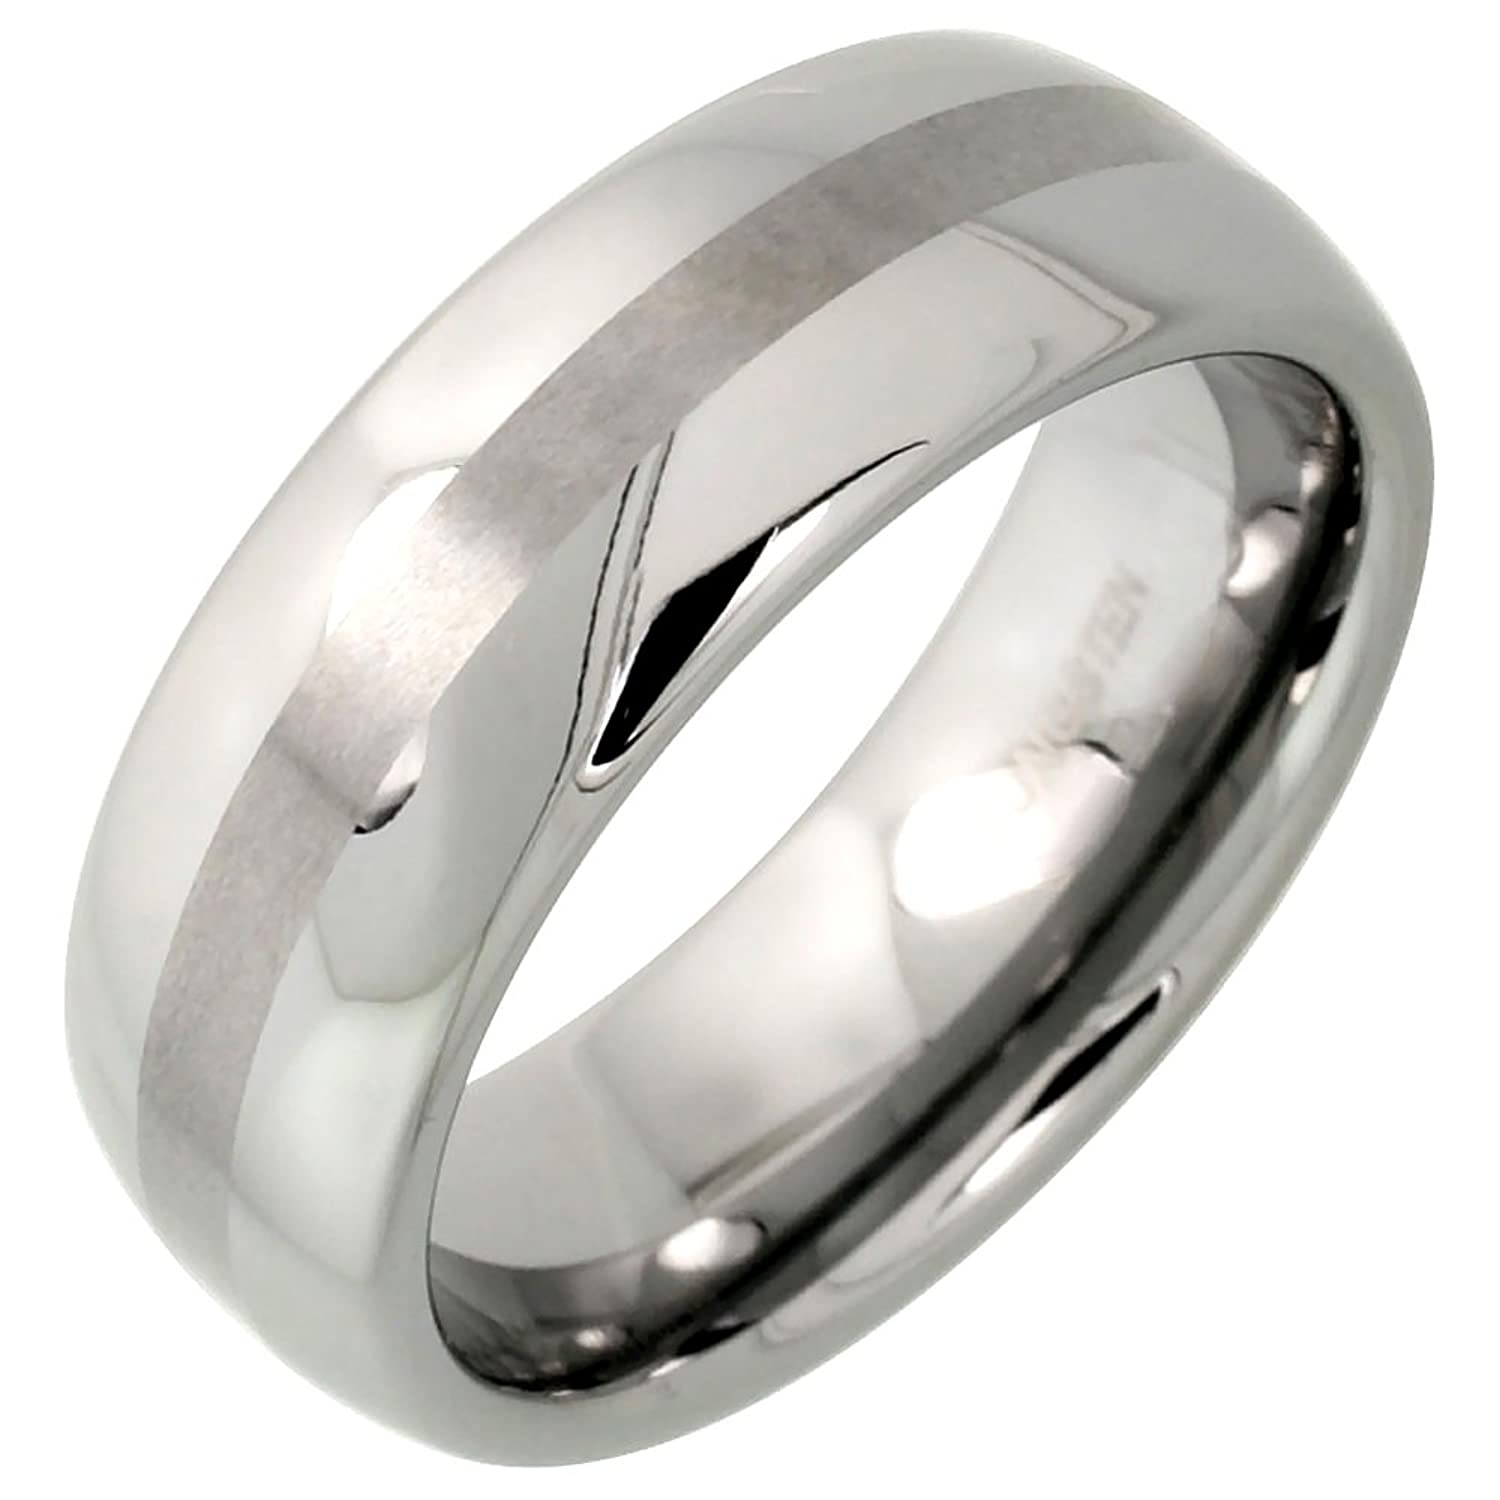 8mm Tungsten 900 TM Wedding Ring Domed Narrow Center Stripe